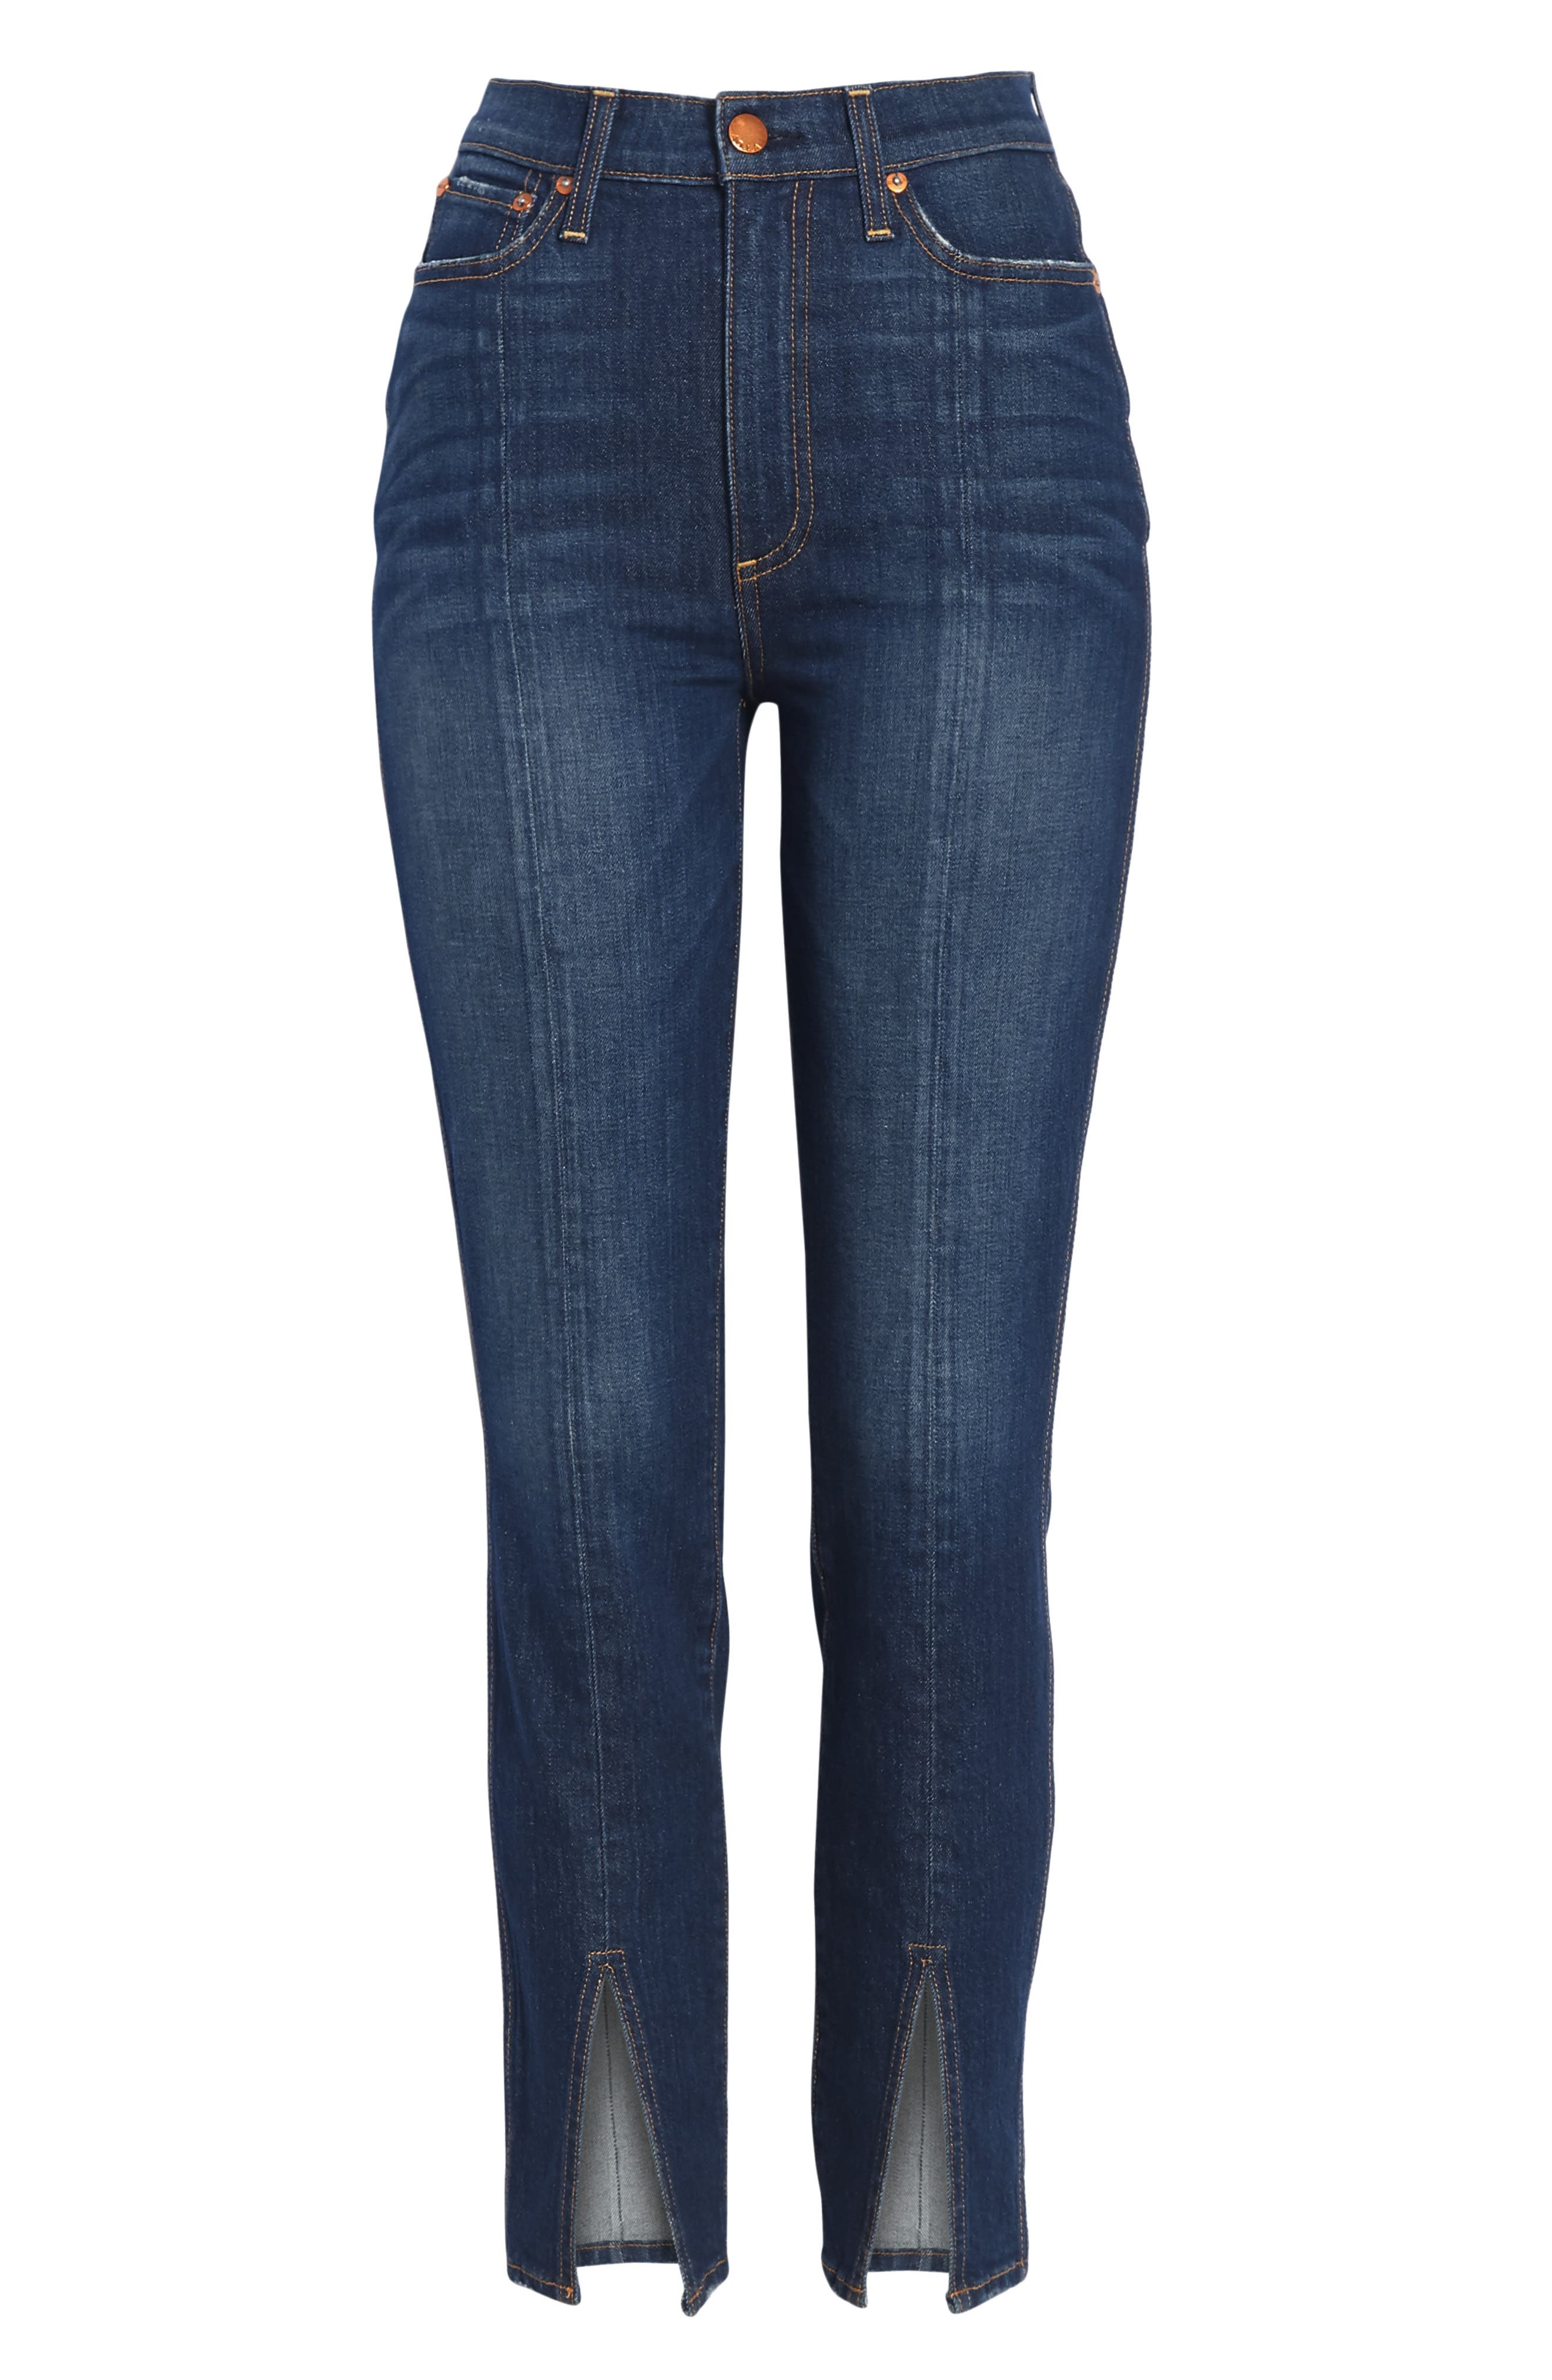 AO.LA Good High Waist Front Slit Skinny Jeans,                             Alternate thumbnail 6, color,                             GOOD TIMES